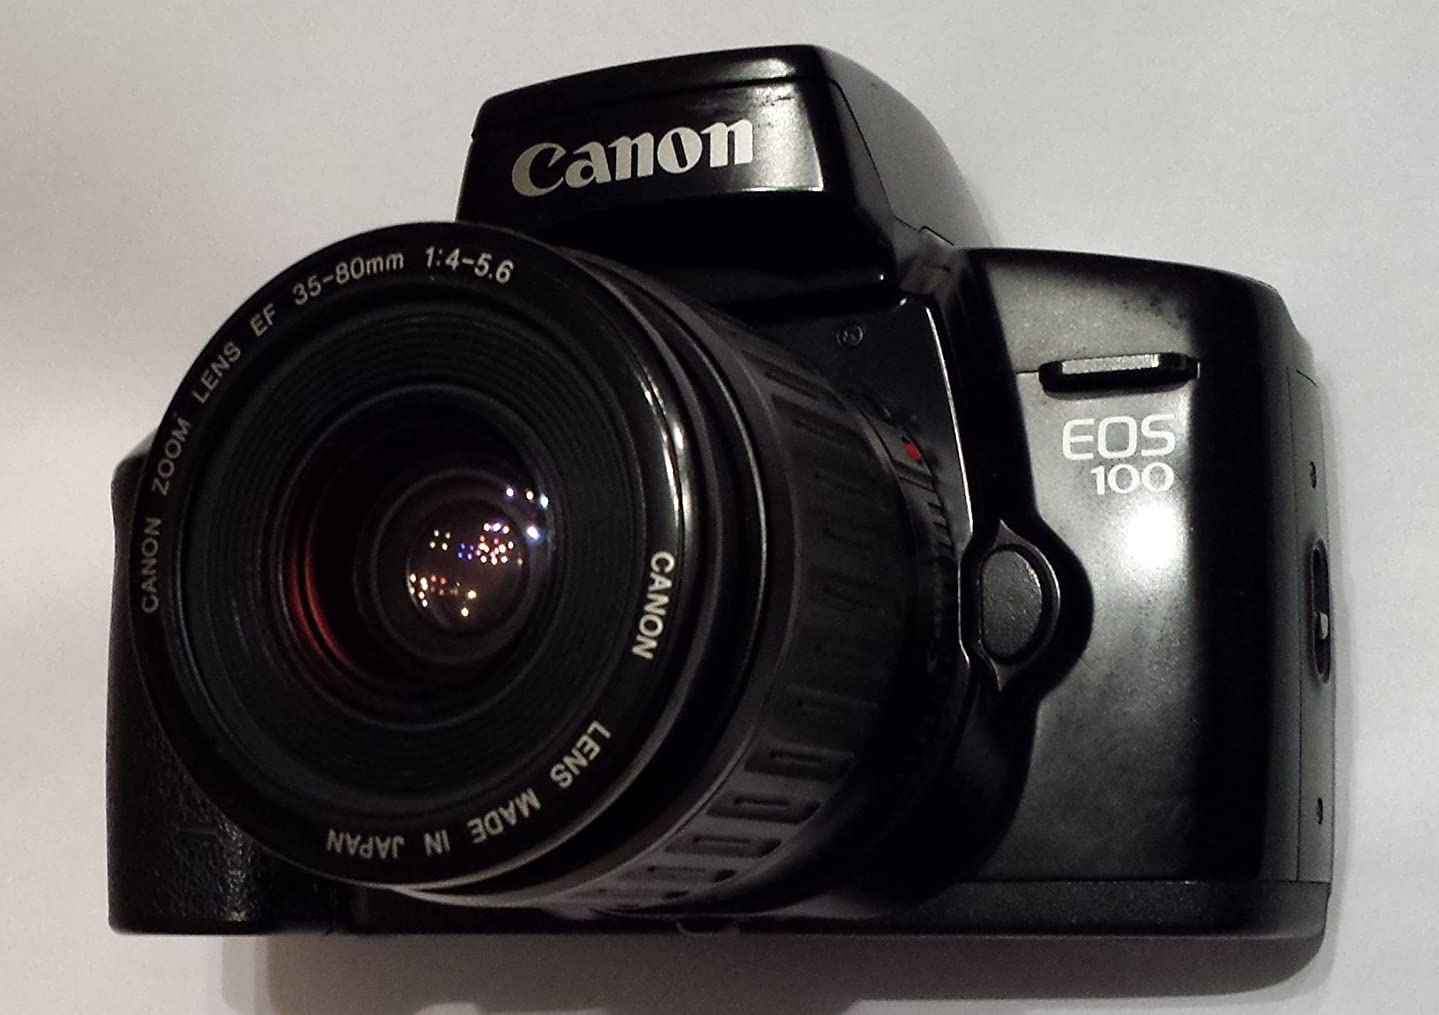 Canon EOS 100 35mm Film Camera with 35-80mm Zoom Lens